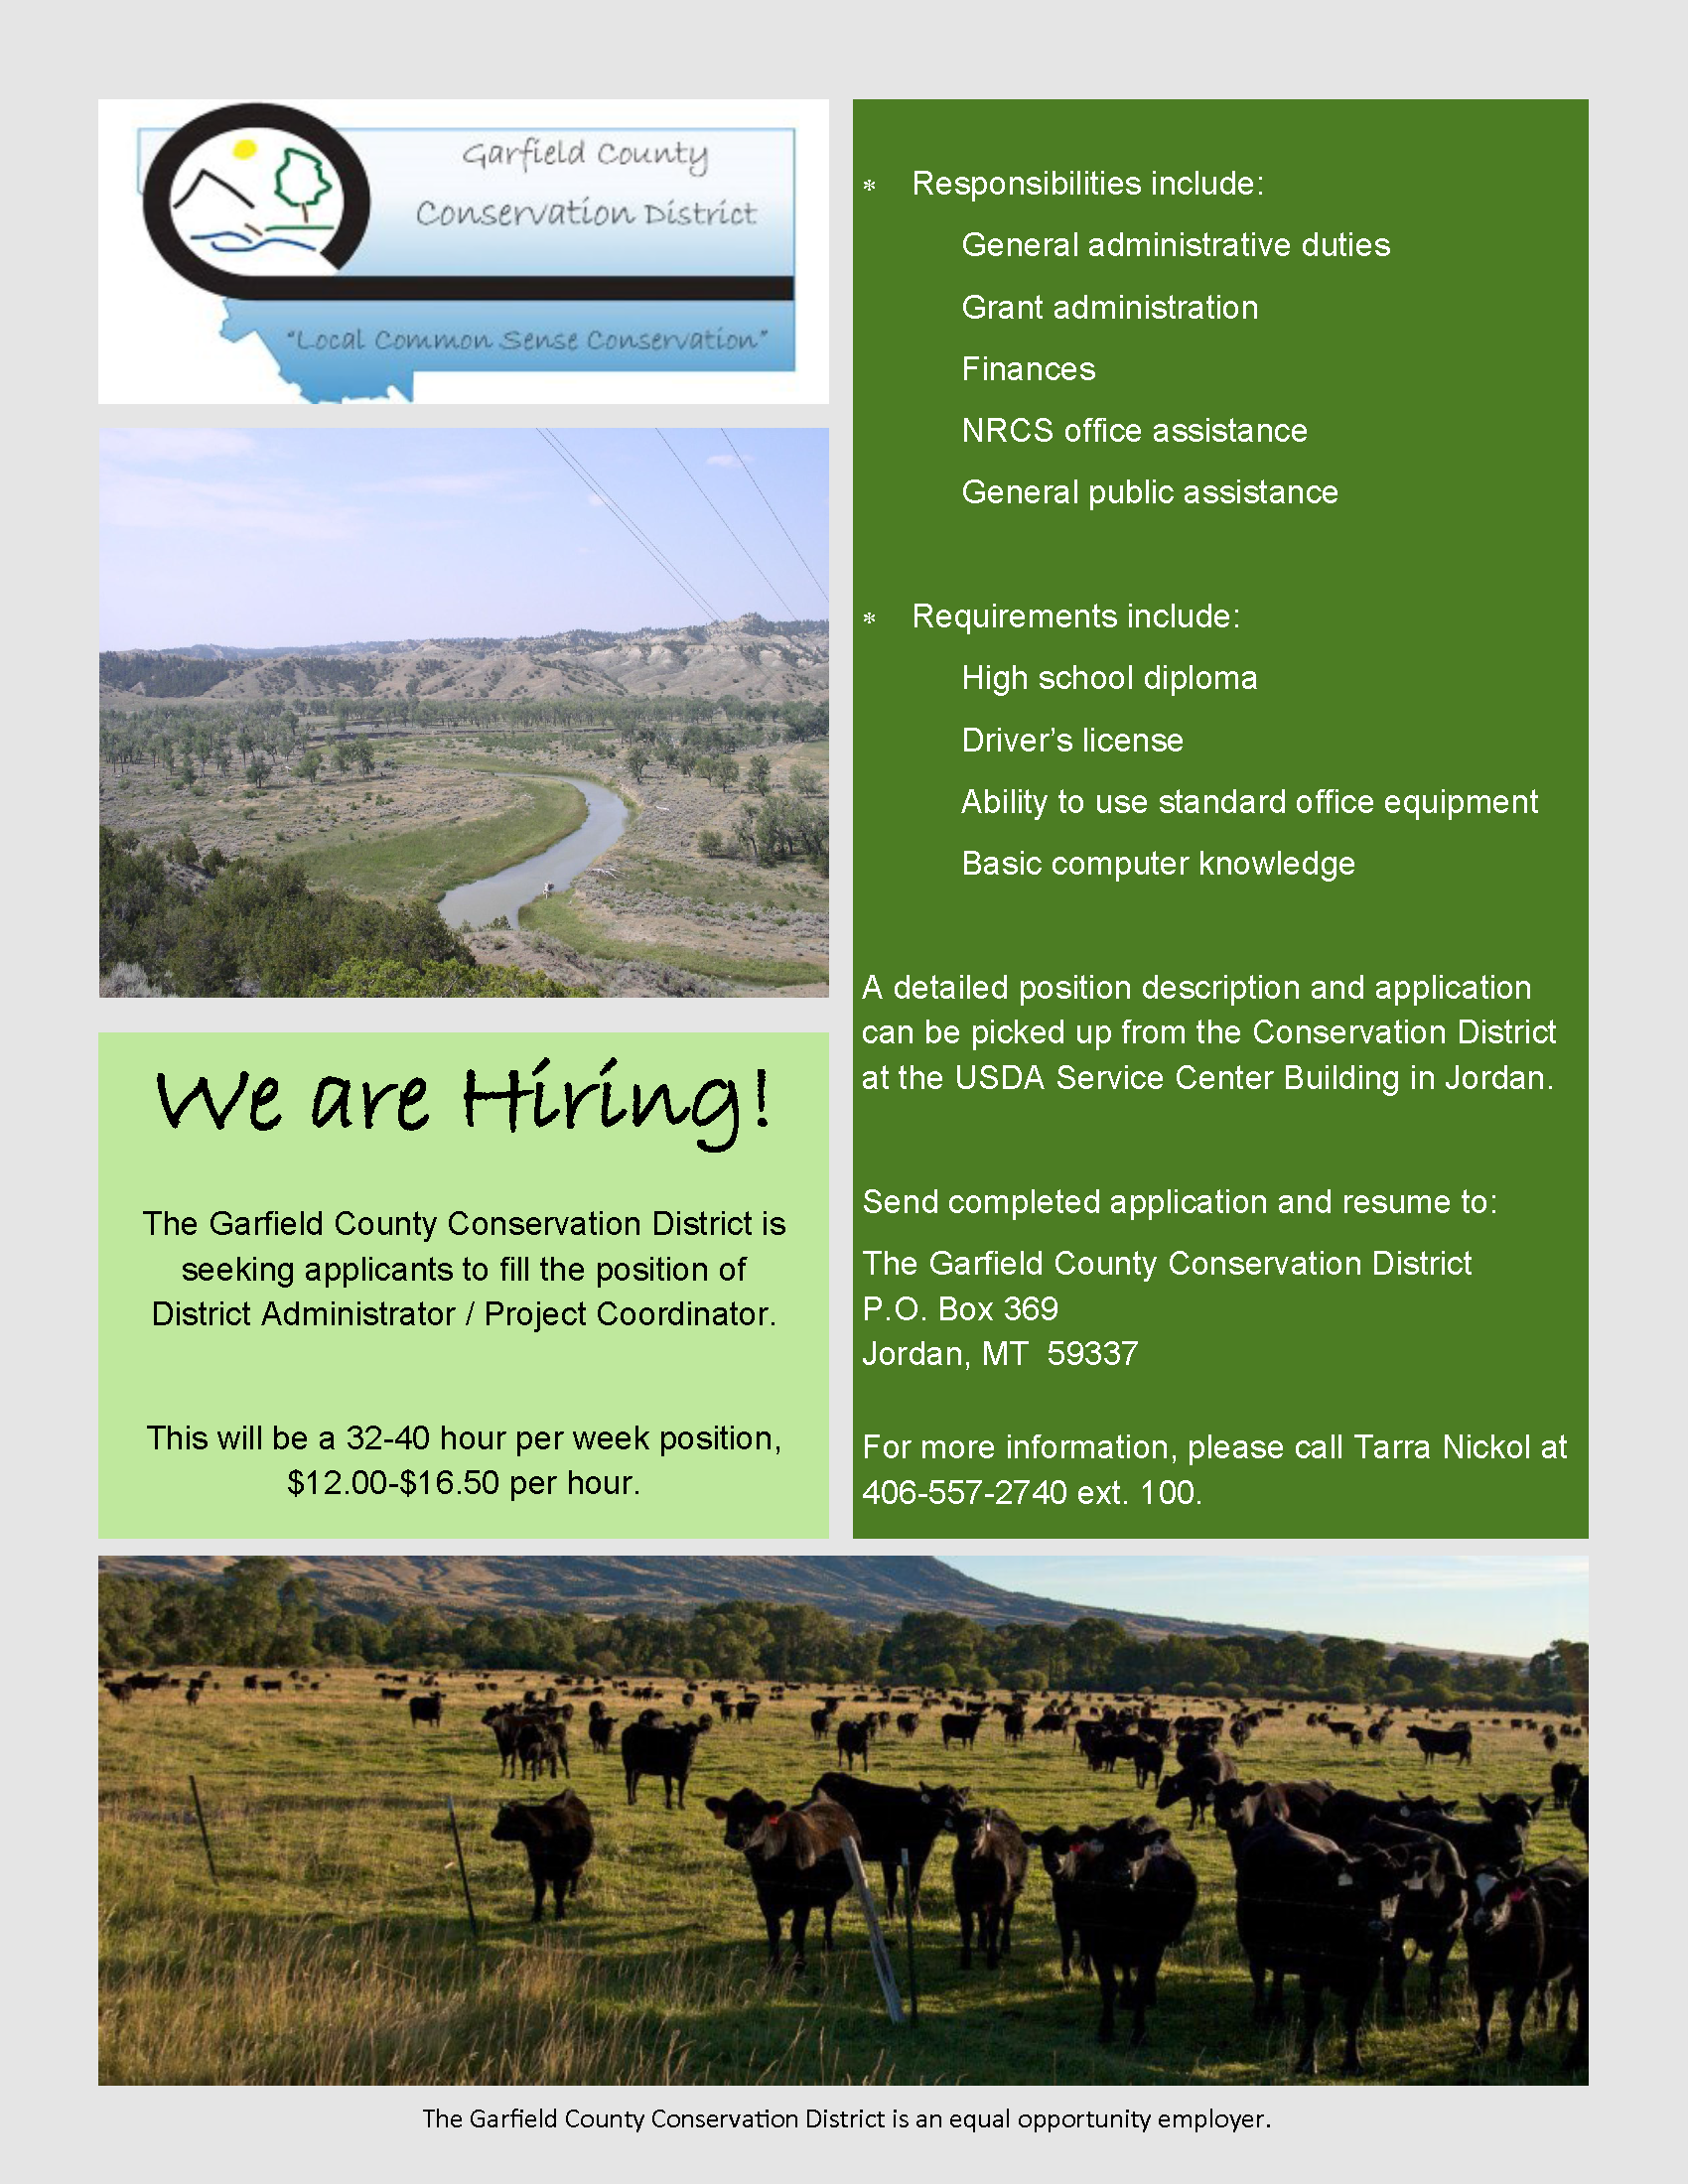 Montana mccone county brockway - Position Available With Garfield County Conservation District